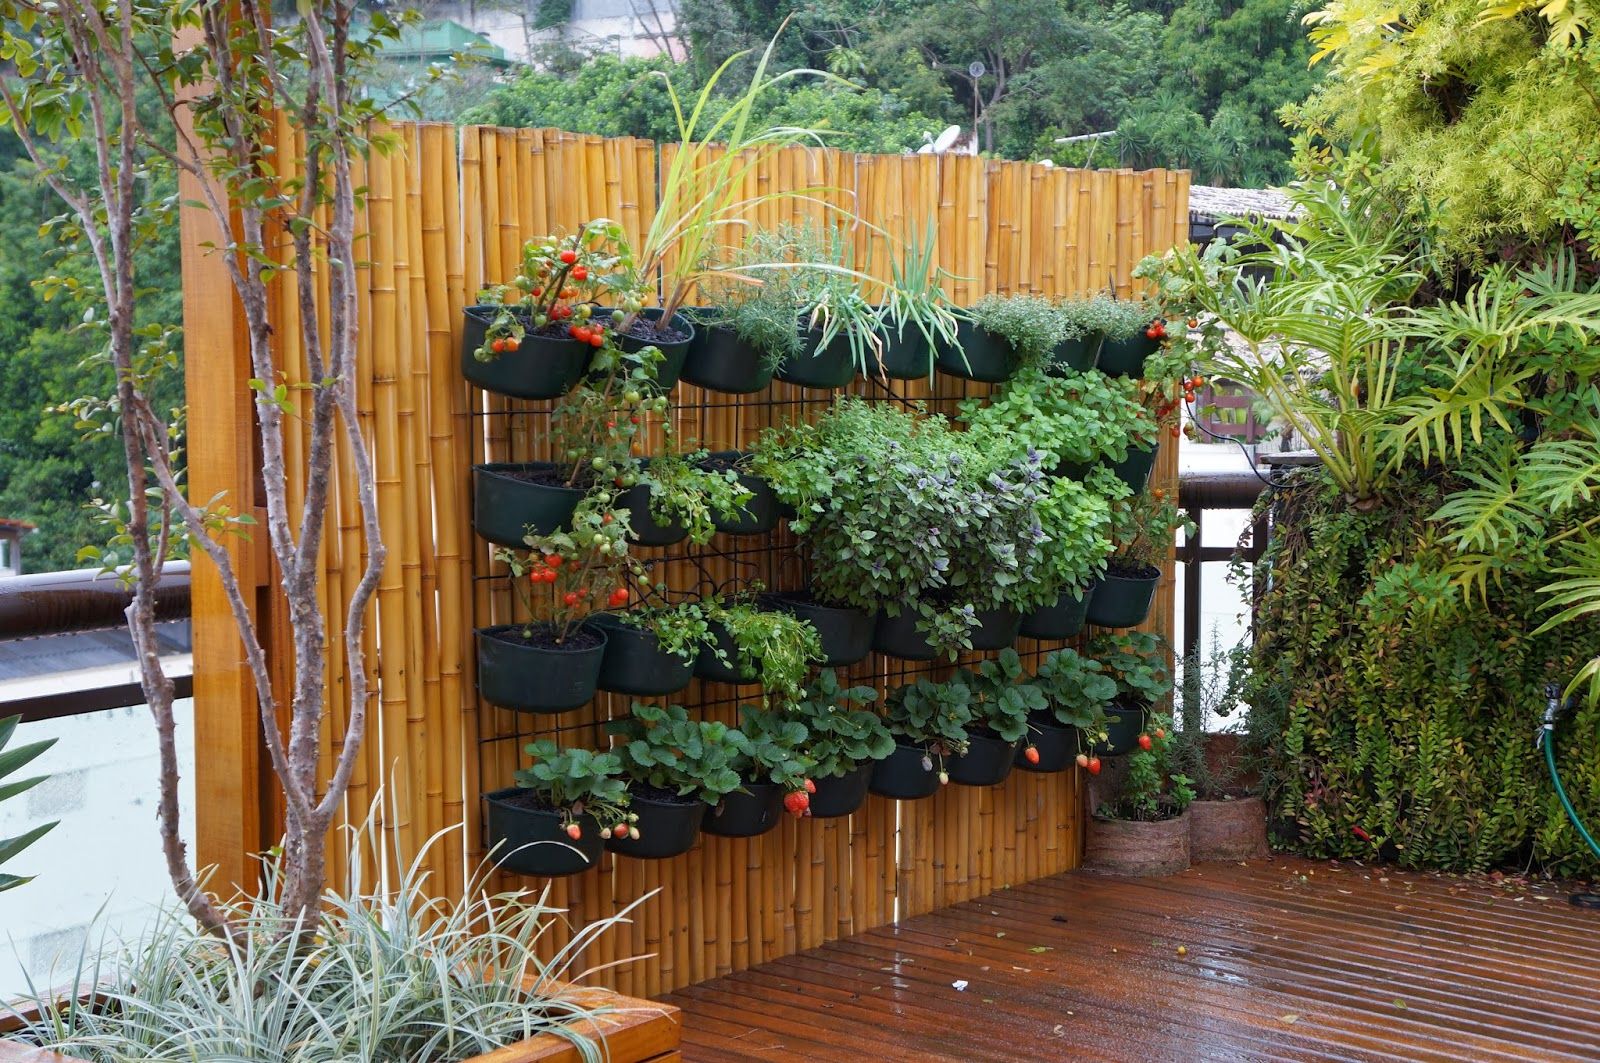 Model Teras Belakang Rumah 30 Stunning Low-budget Diy Garden Pots And Containers